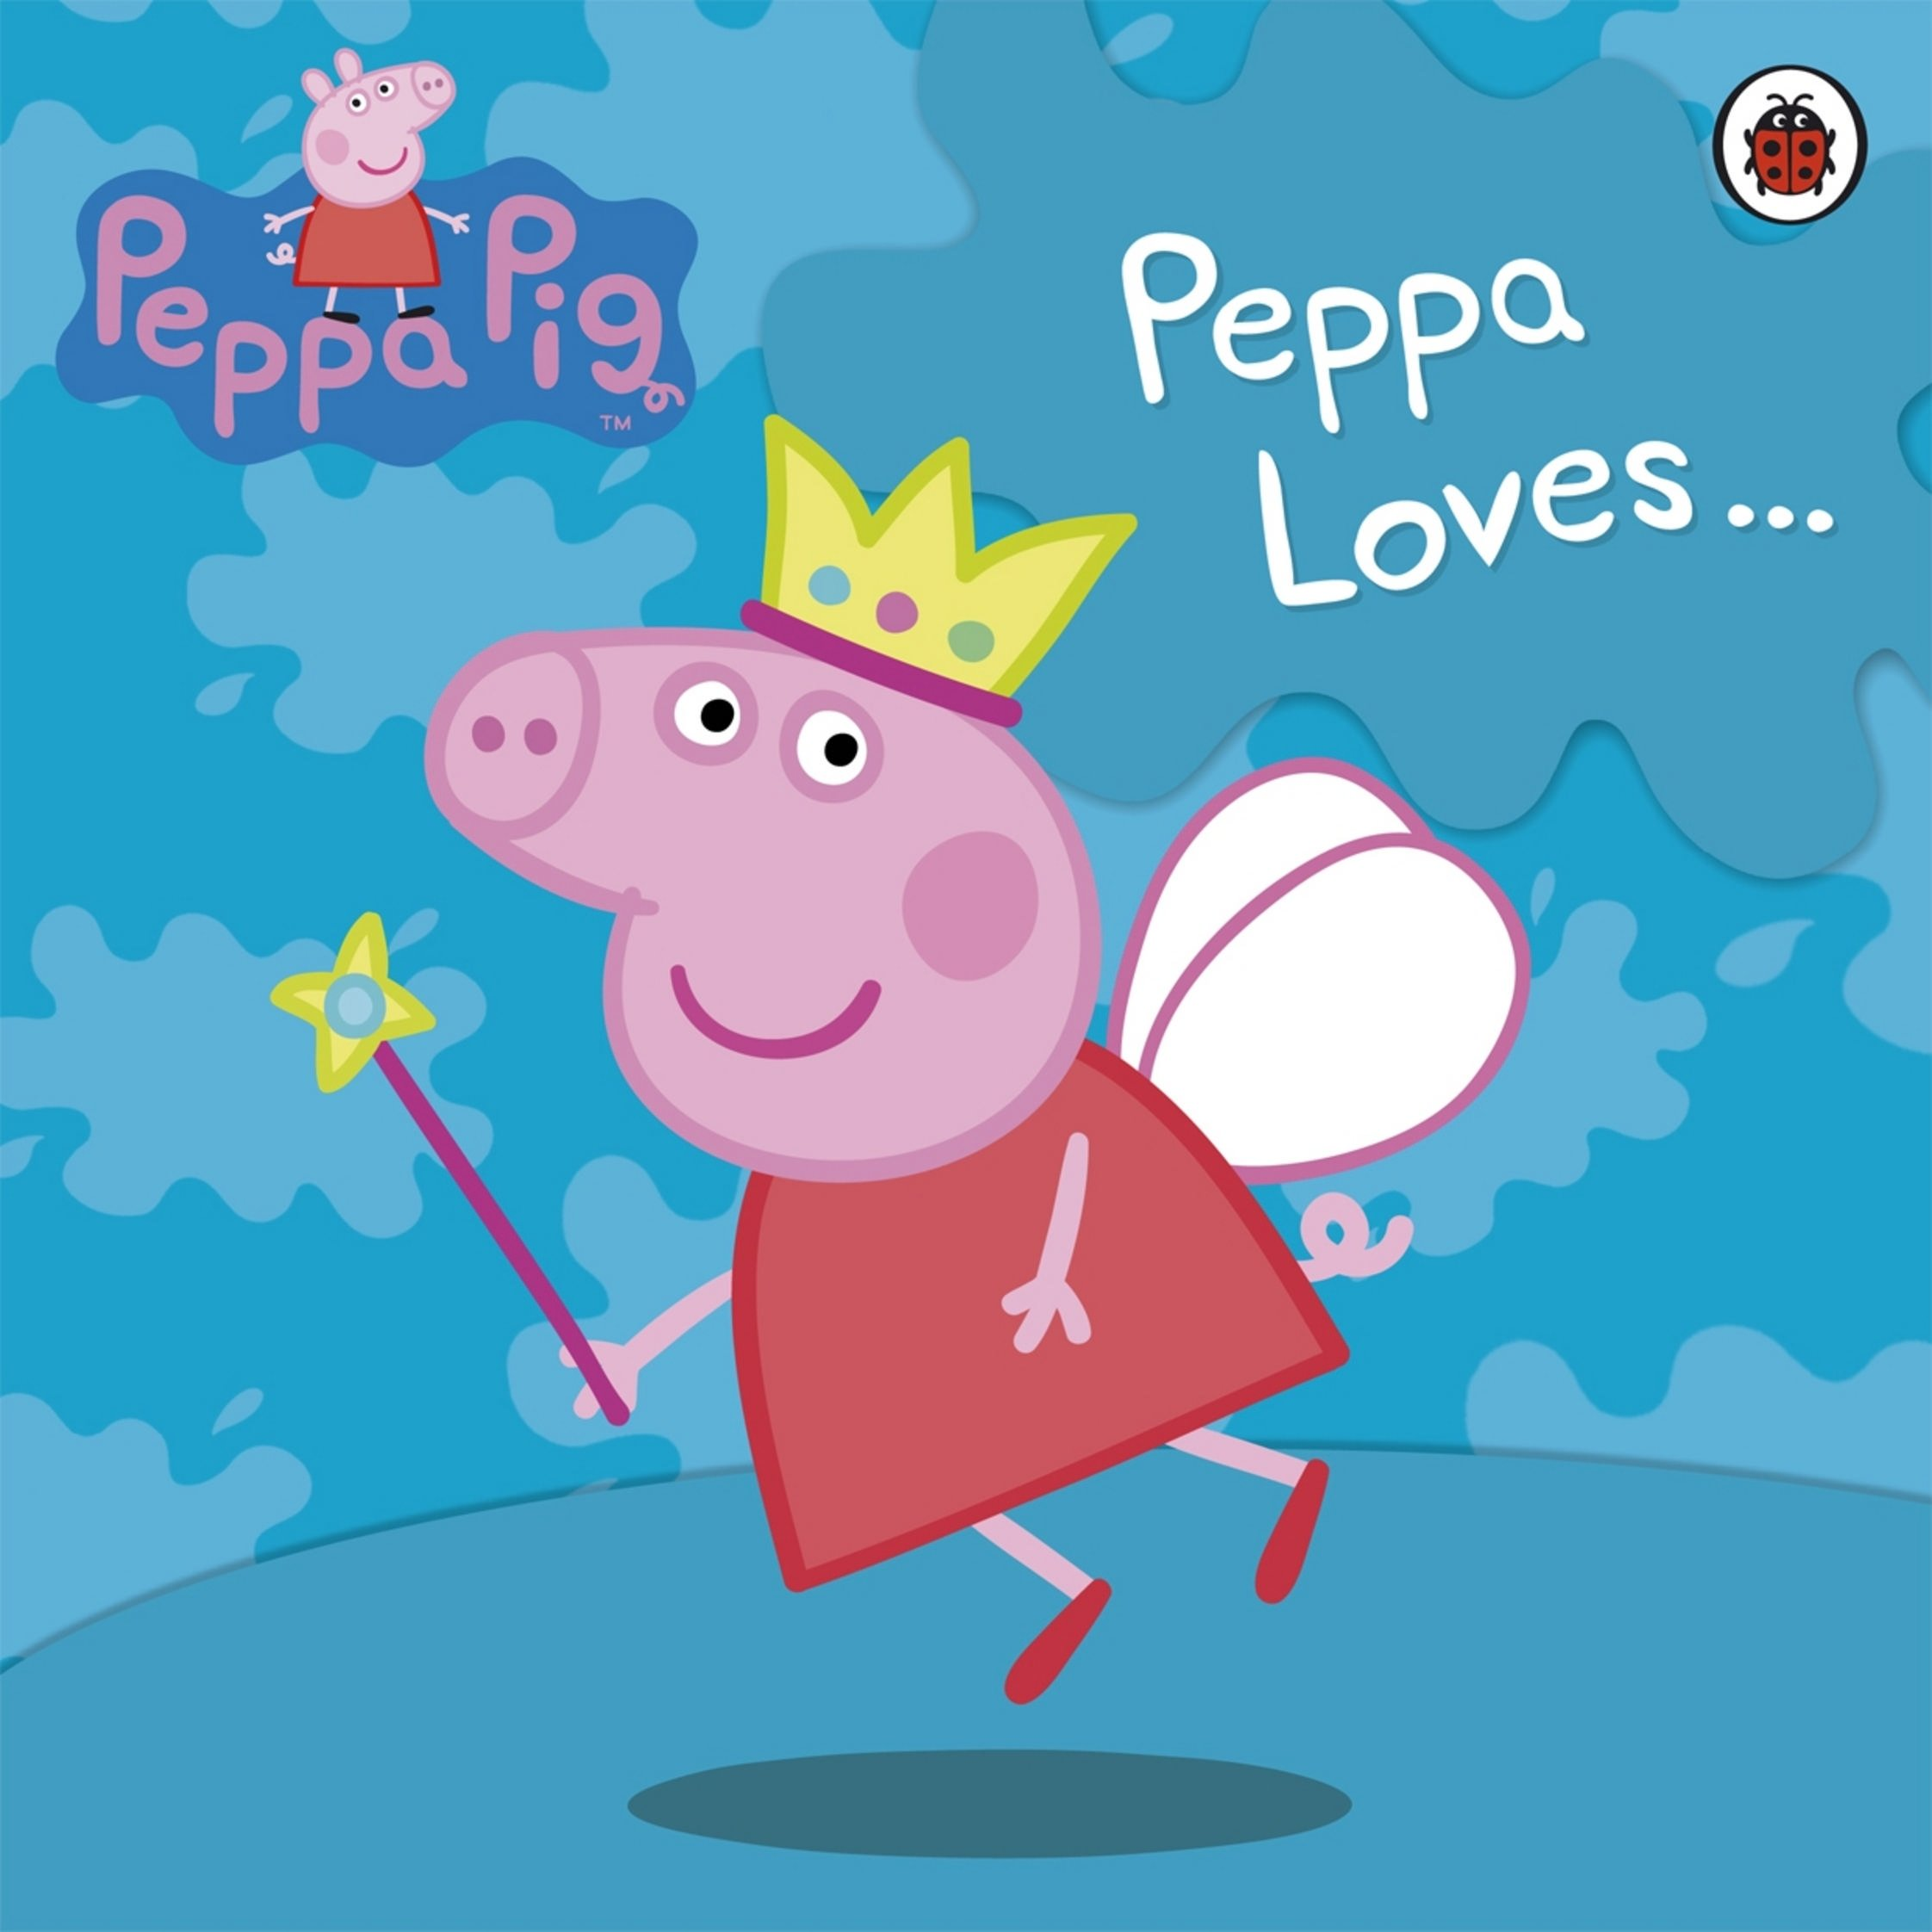 Peppa Pig Toys Peppa Pig Desktop Wallpaper 2244x2244